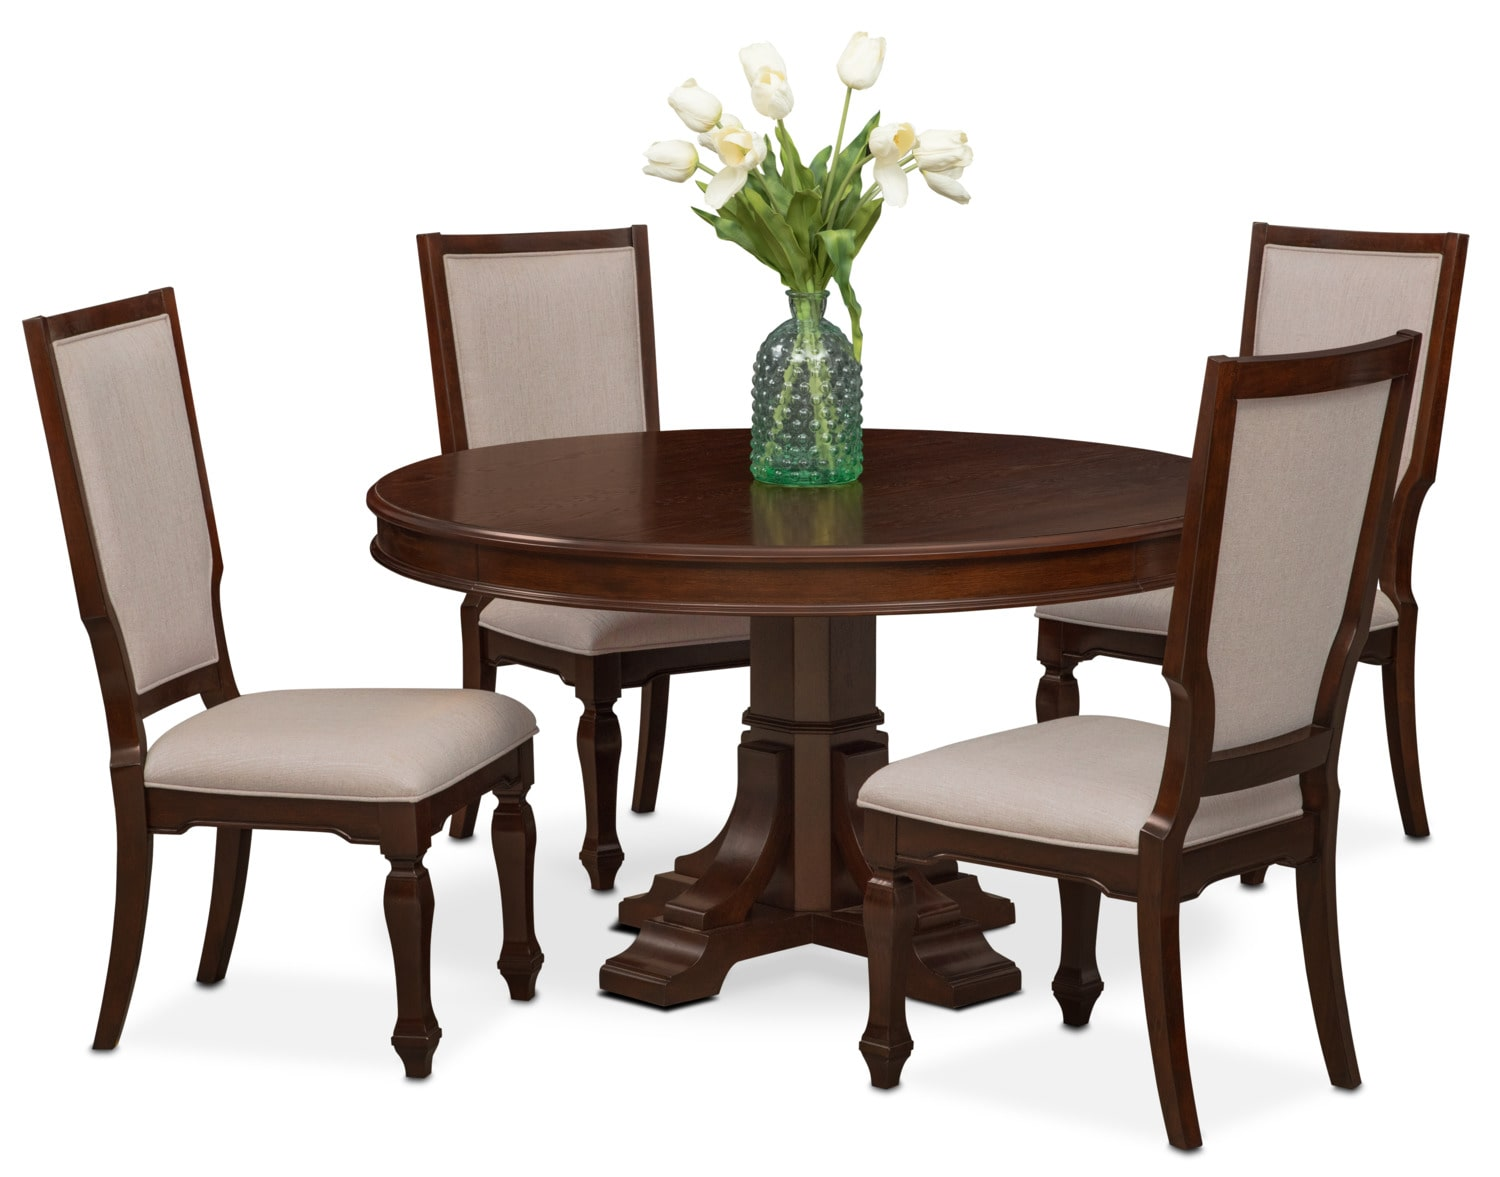 accent chairs for dining room table steel chair price in kolkata vienna round and 4 upholstered side